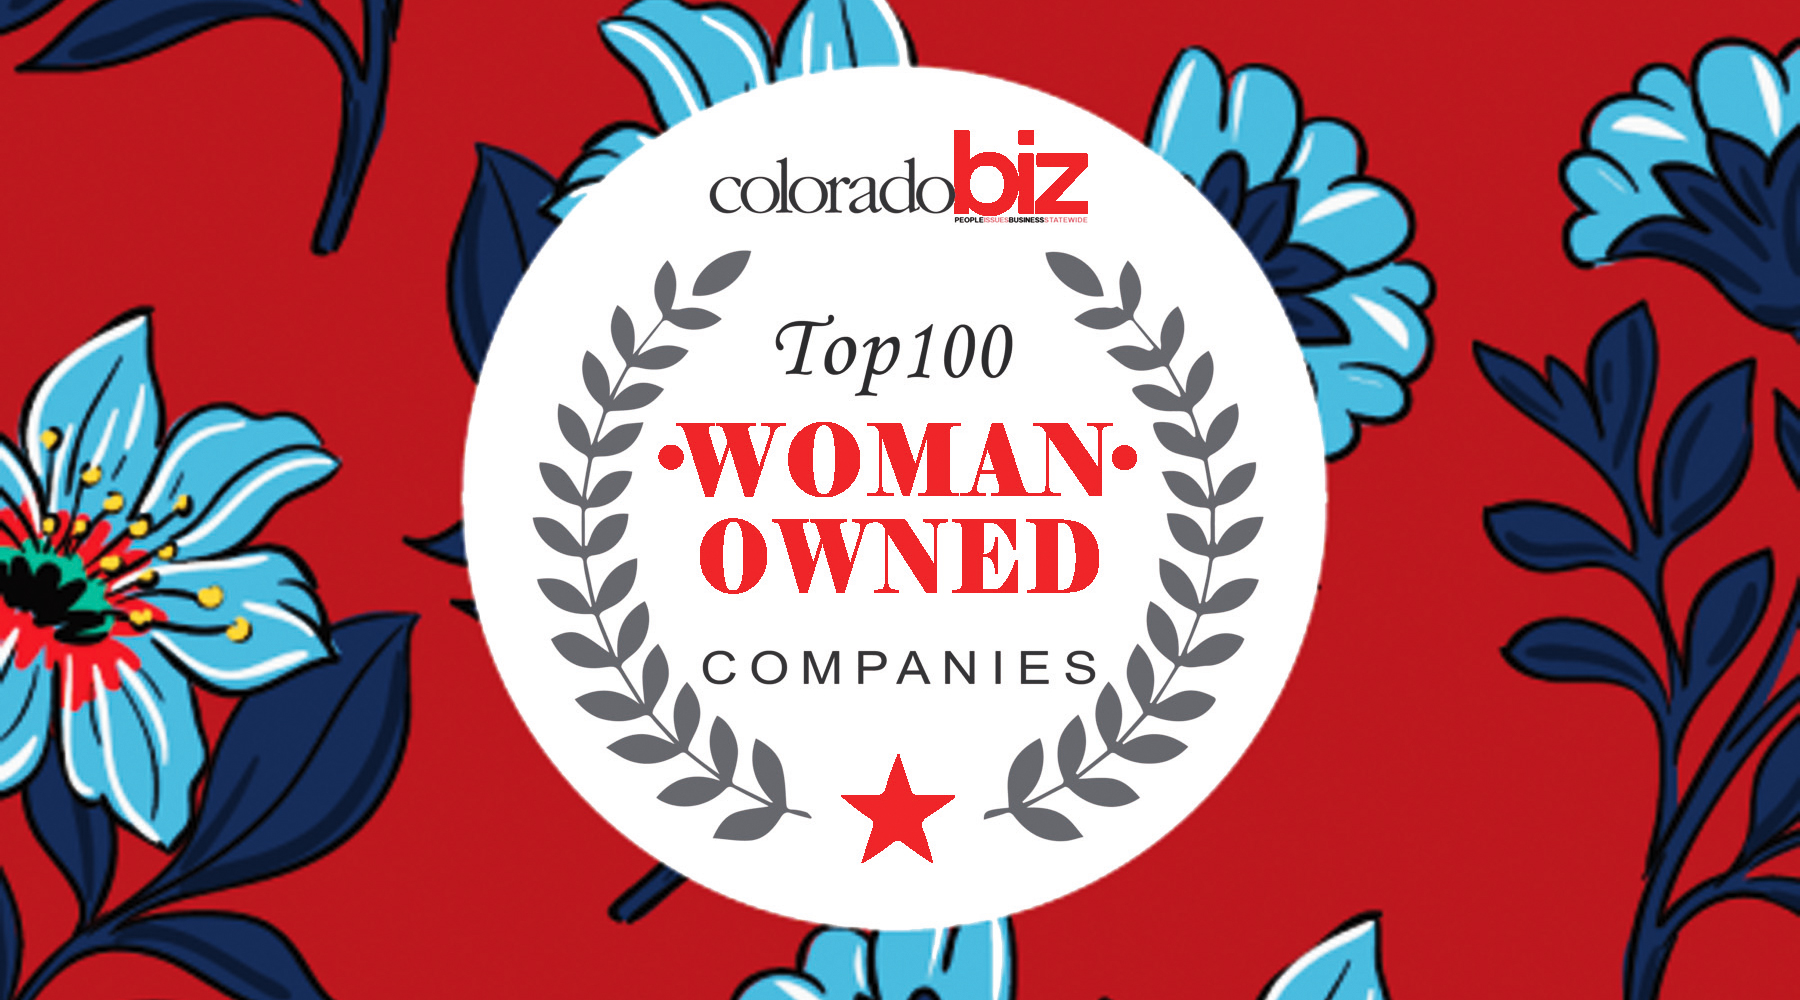 ColoradoBiz Top 100 Woman-Owned Companies 2018